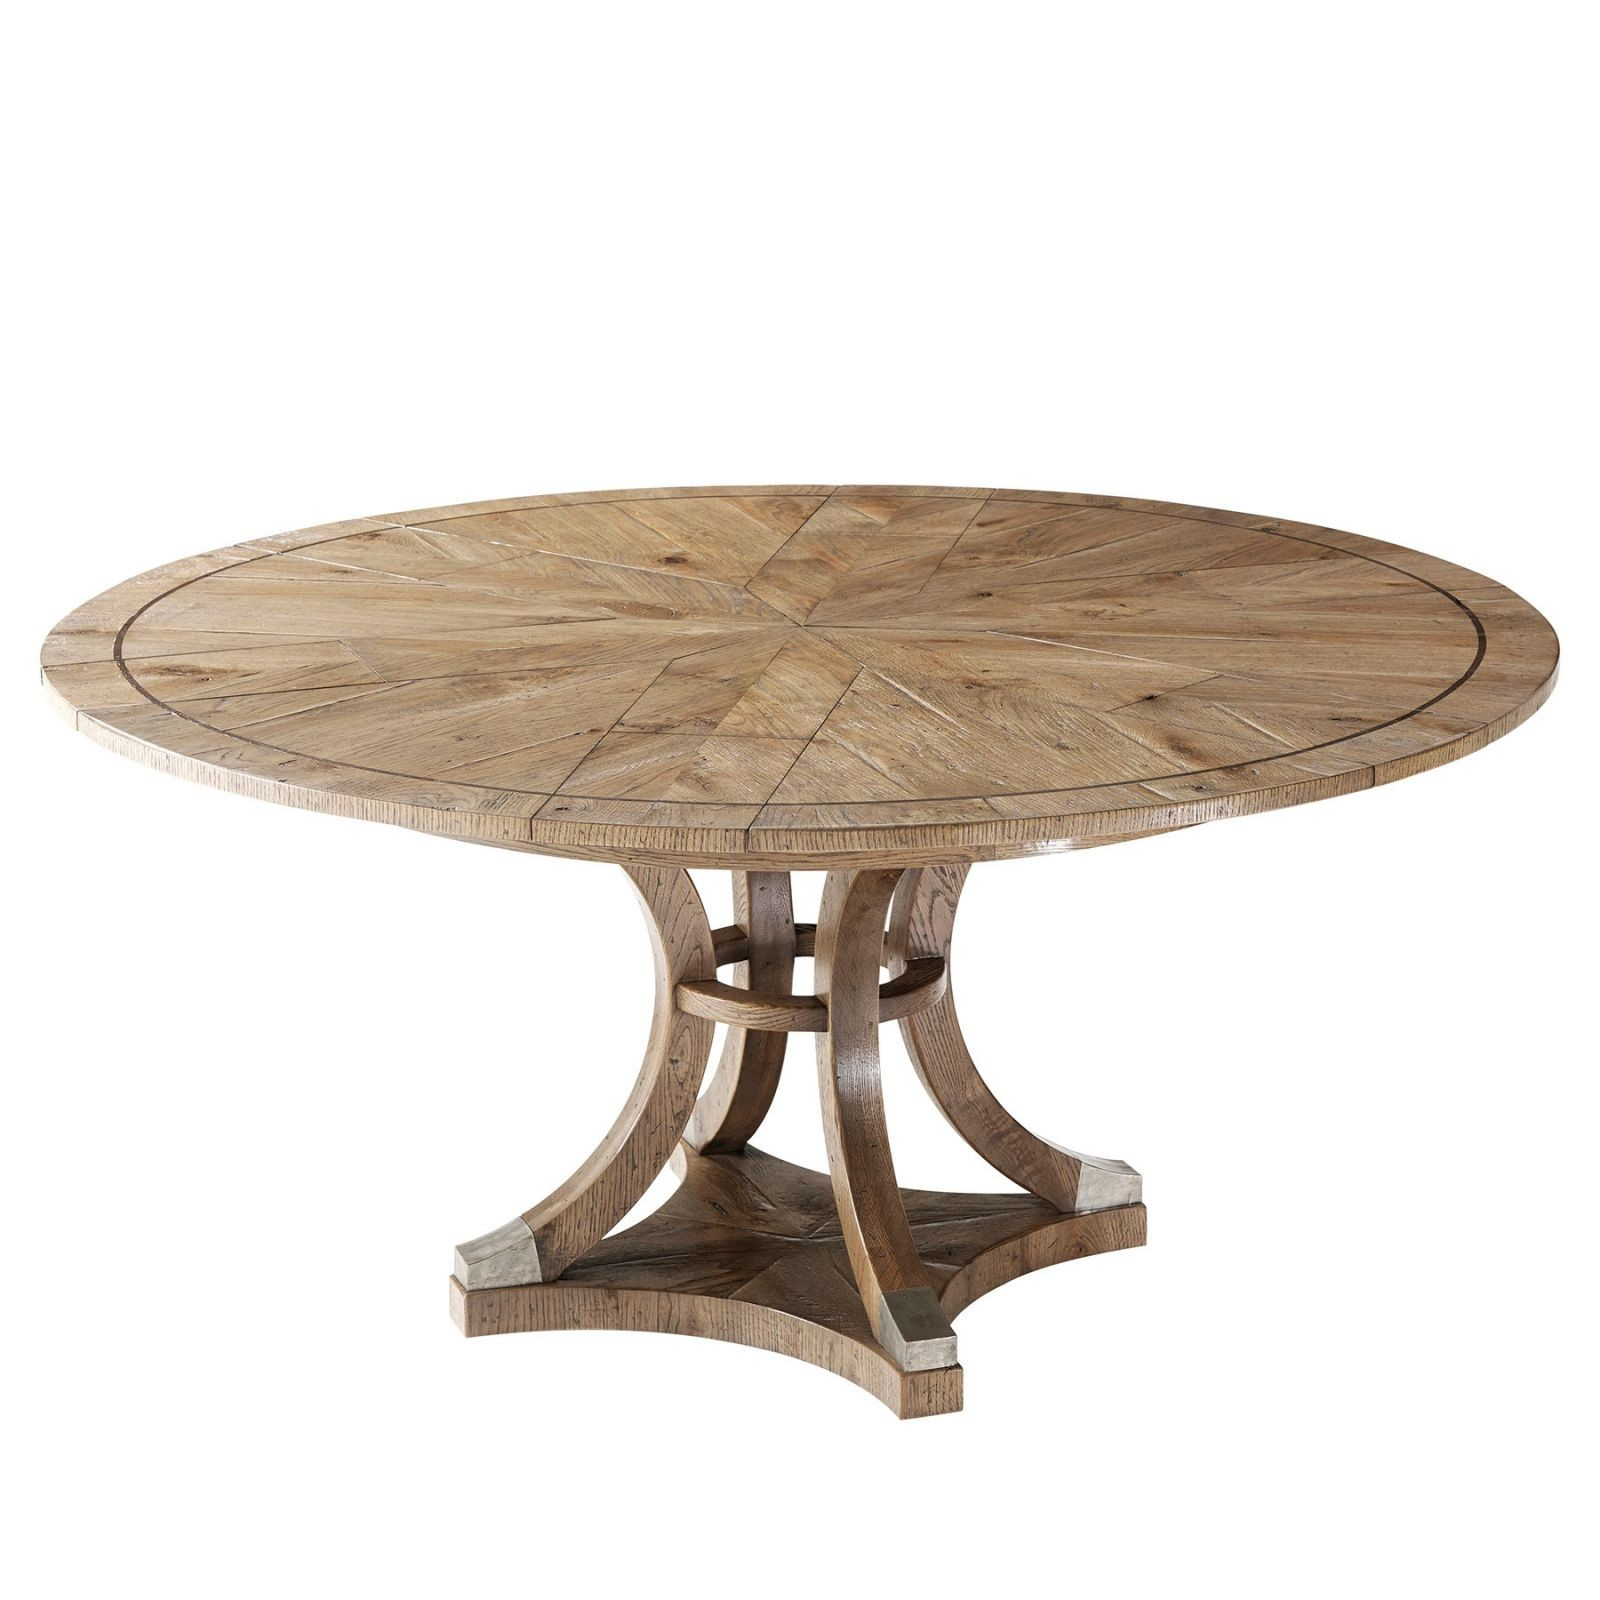 Parquetry oak Jupe's style expanding round dining table